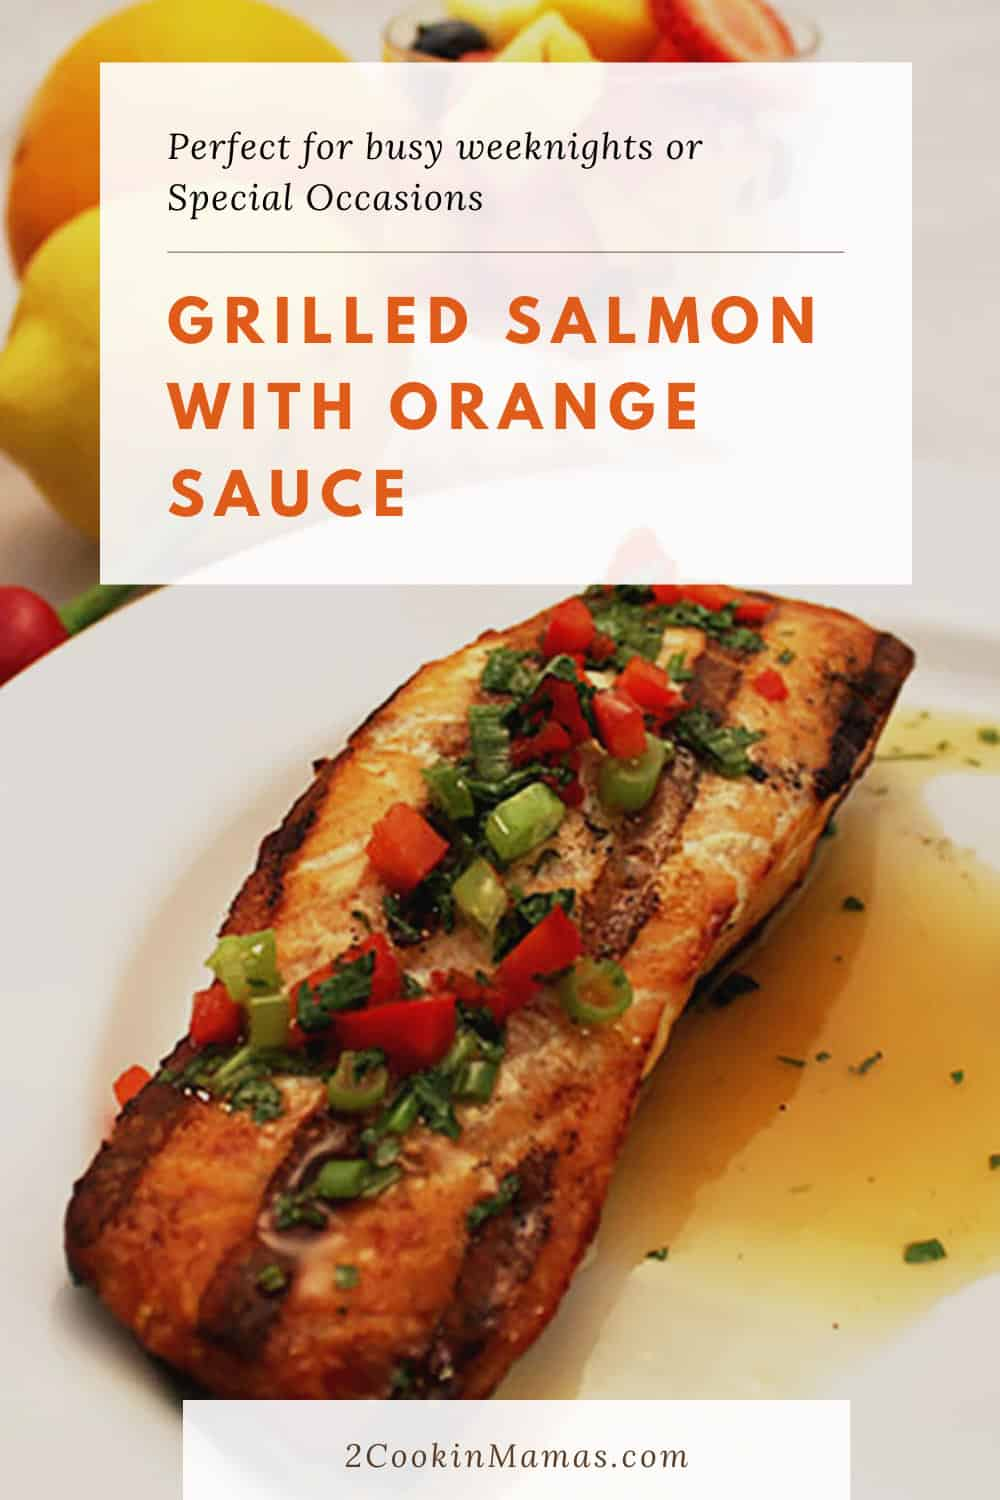 Grilled Salmon with Orange Sauce